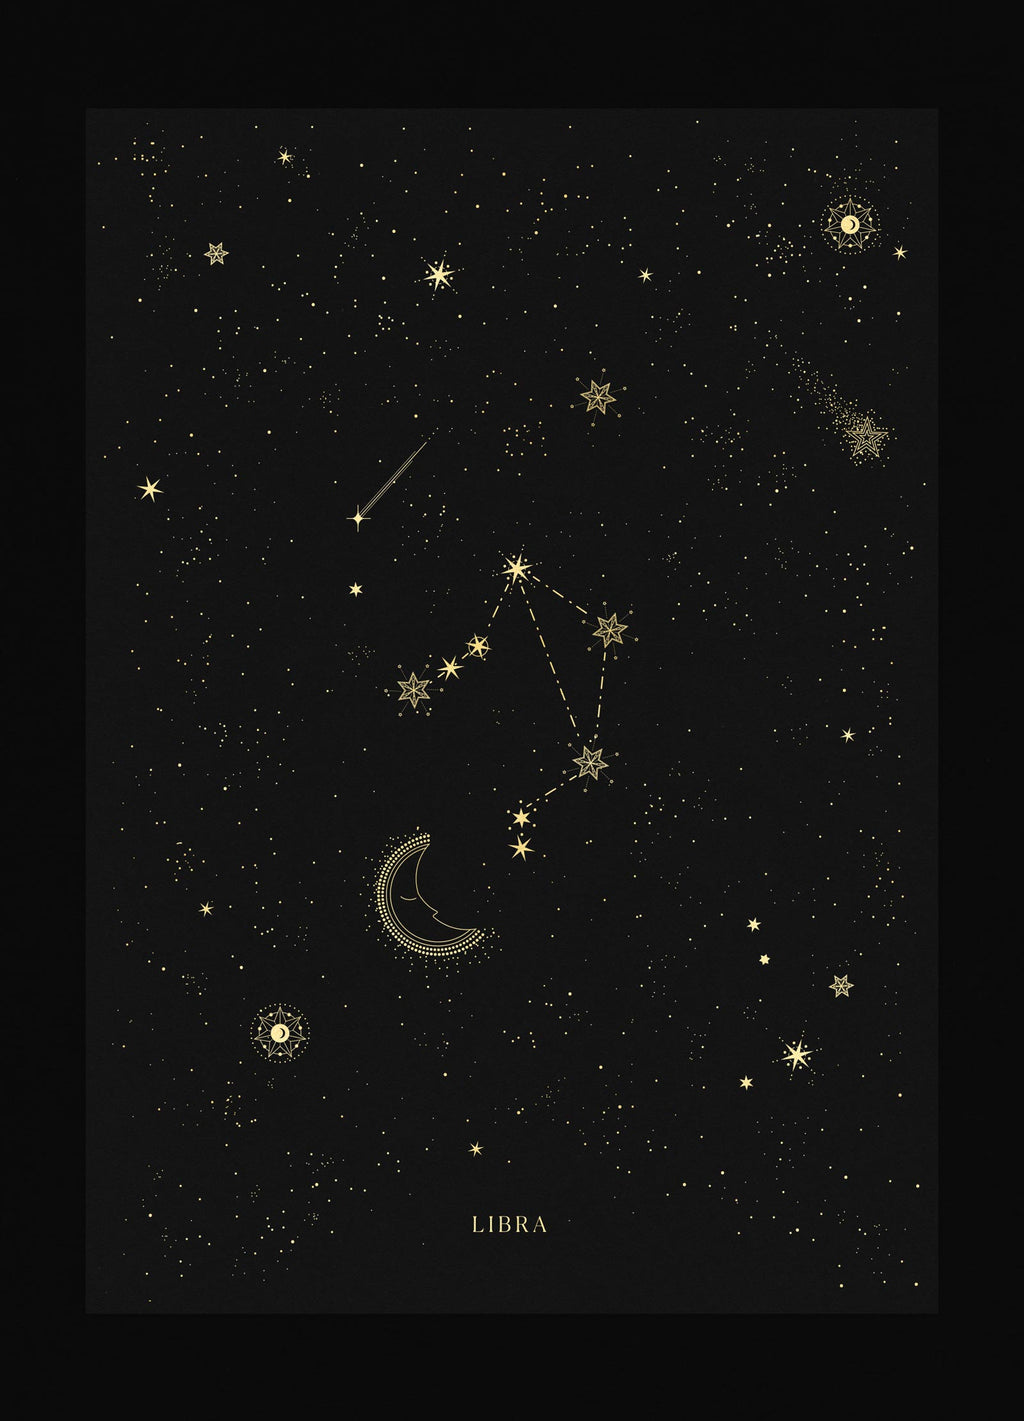 Libra zodiac constellation gold metallic foil print on black paper by Cocorrina